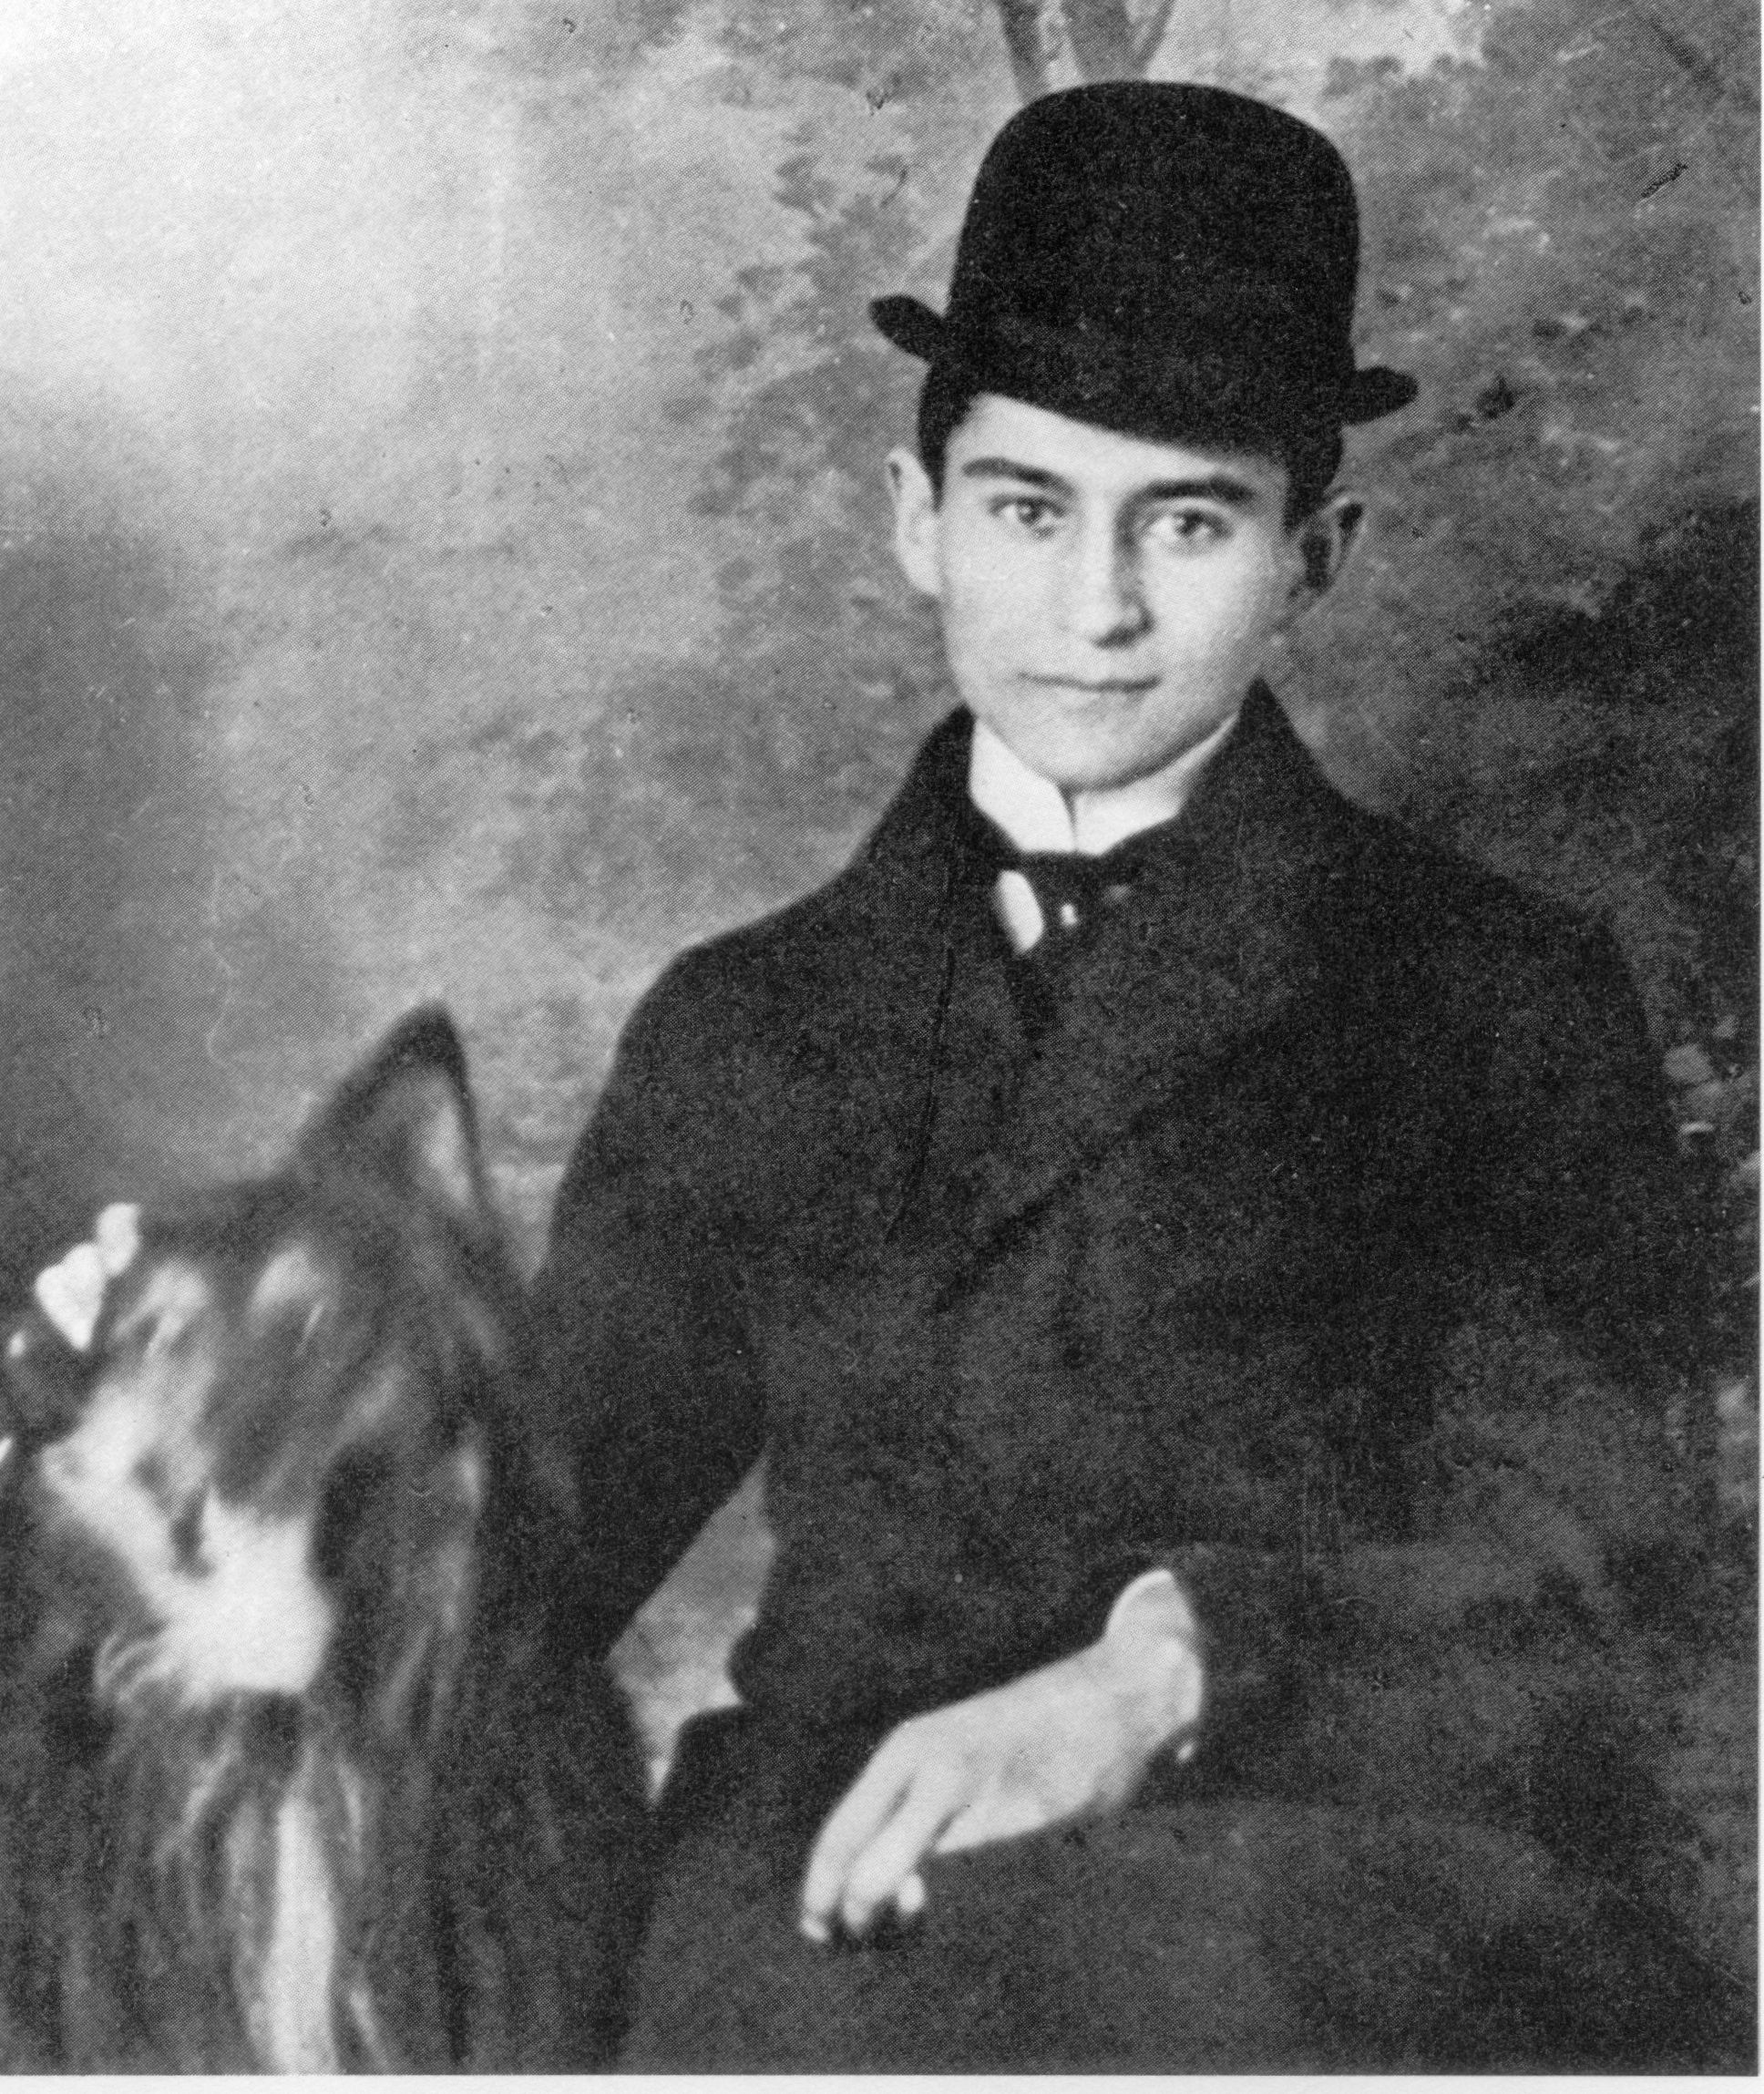 franz kafkas metamorposis essay Fonts similarly in franz kafka's life there was a struggle between father and son that was propelled by their dissimilar wants and expectations of the other party.